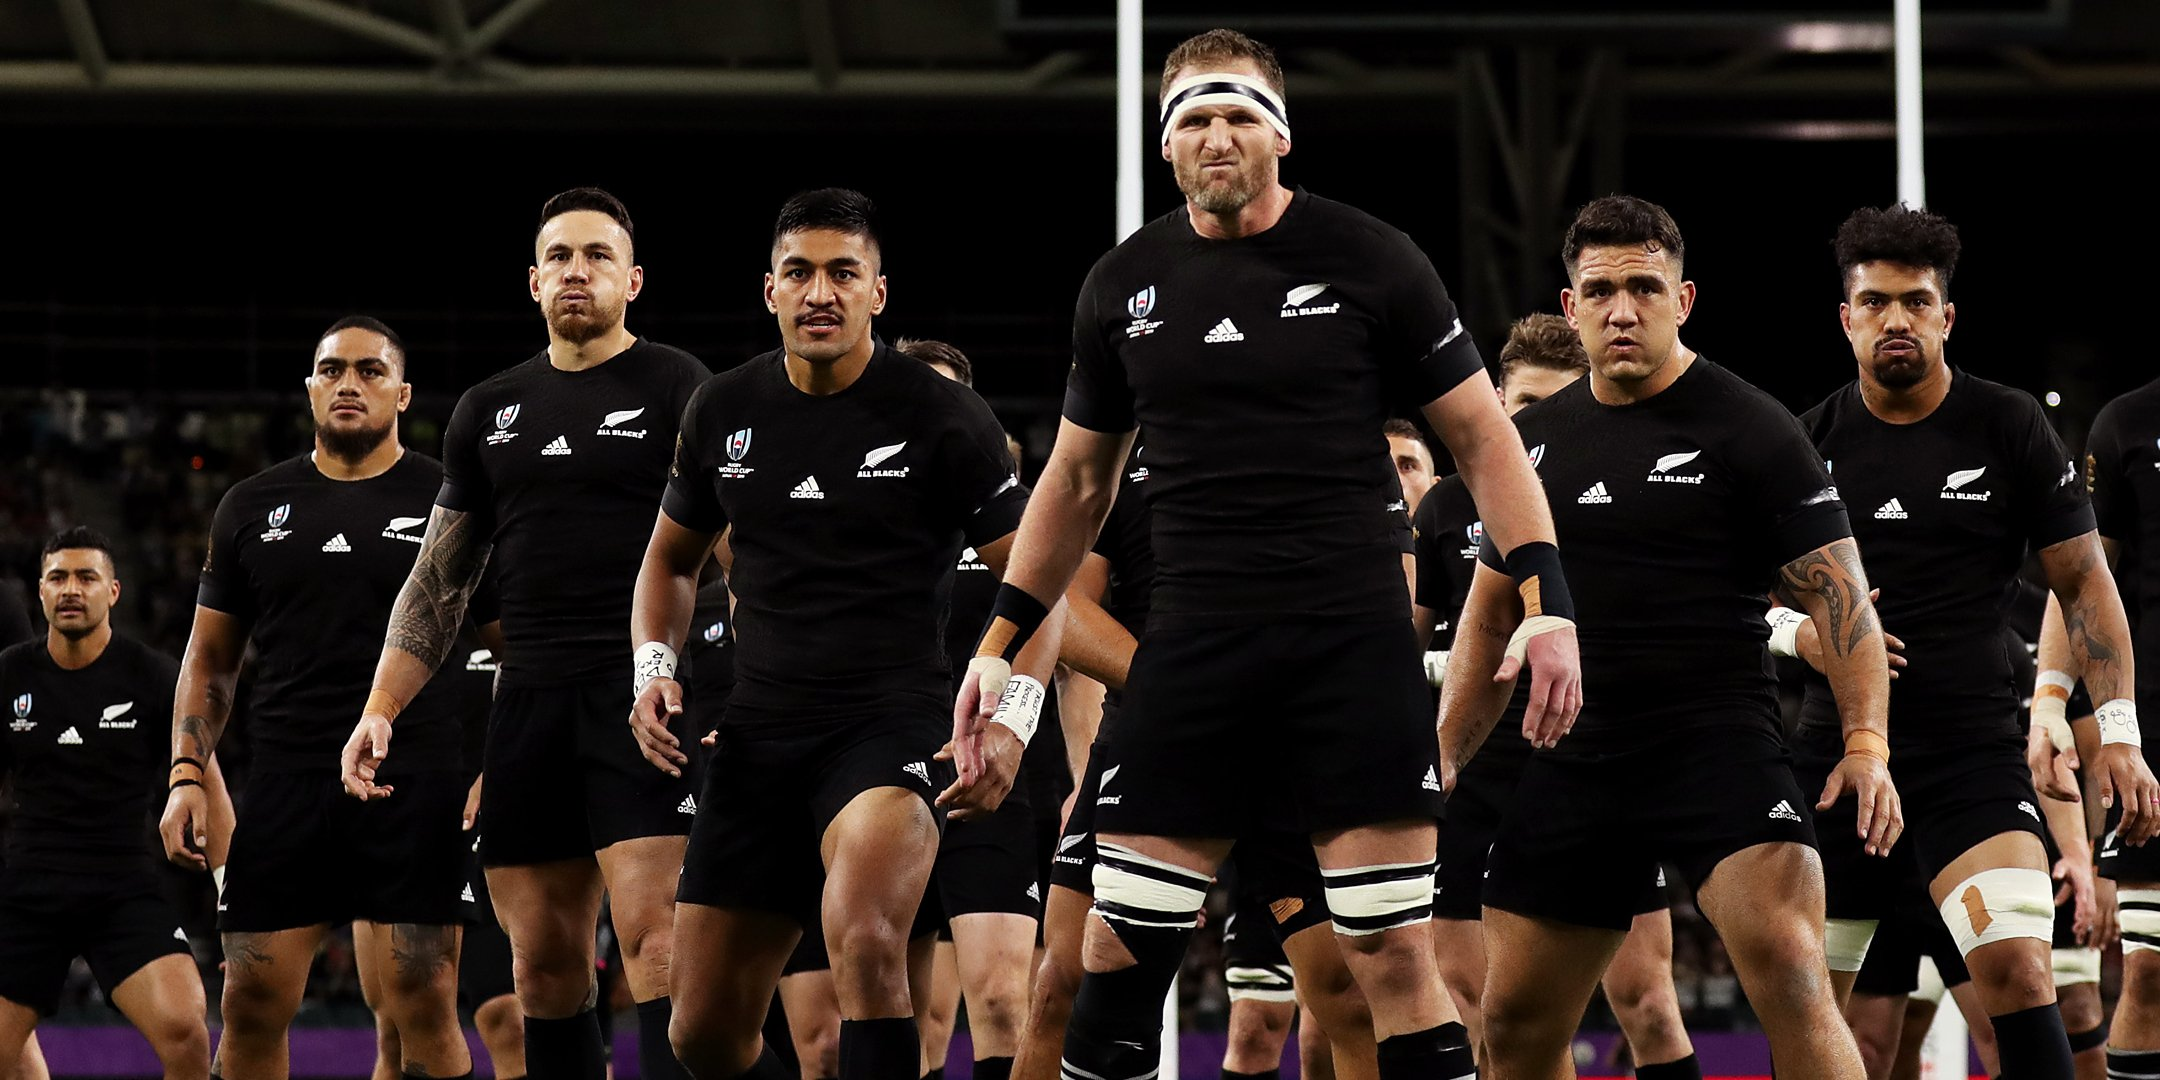 All Blacks Rugby Team - Leaders within Rugby